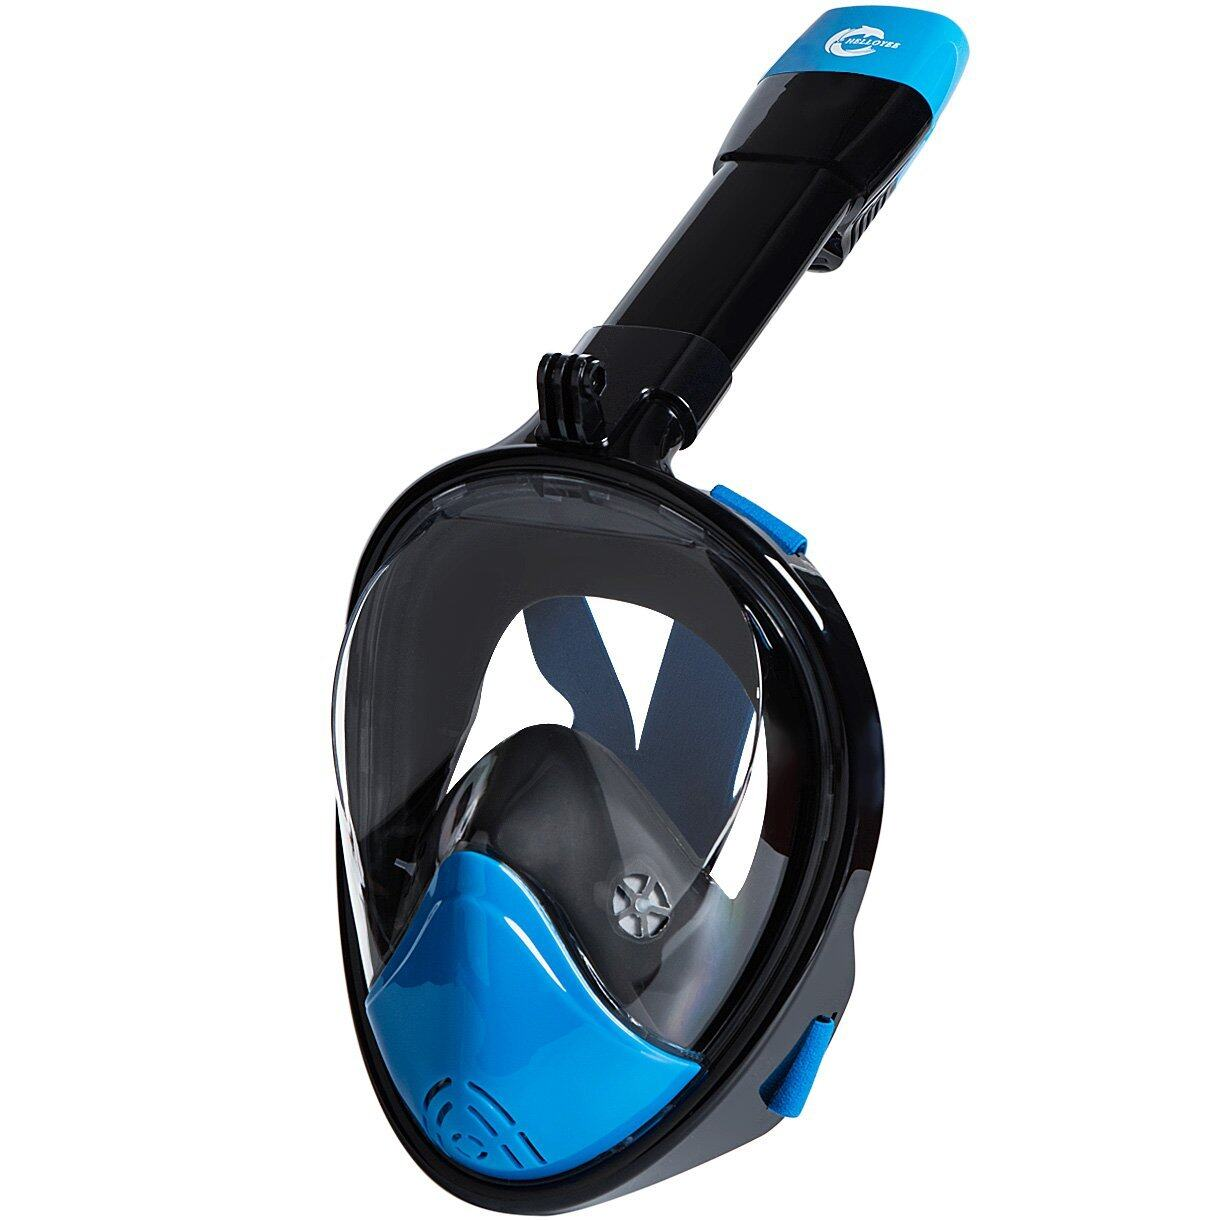 HELLOYEE Full Face Snorkel Mask 180° Panoramic View Breathe Free For Adults And Kids 4